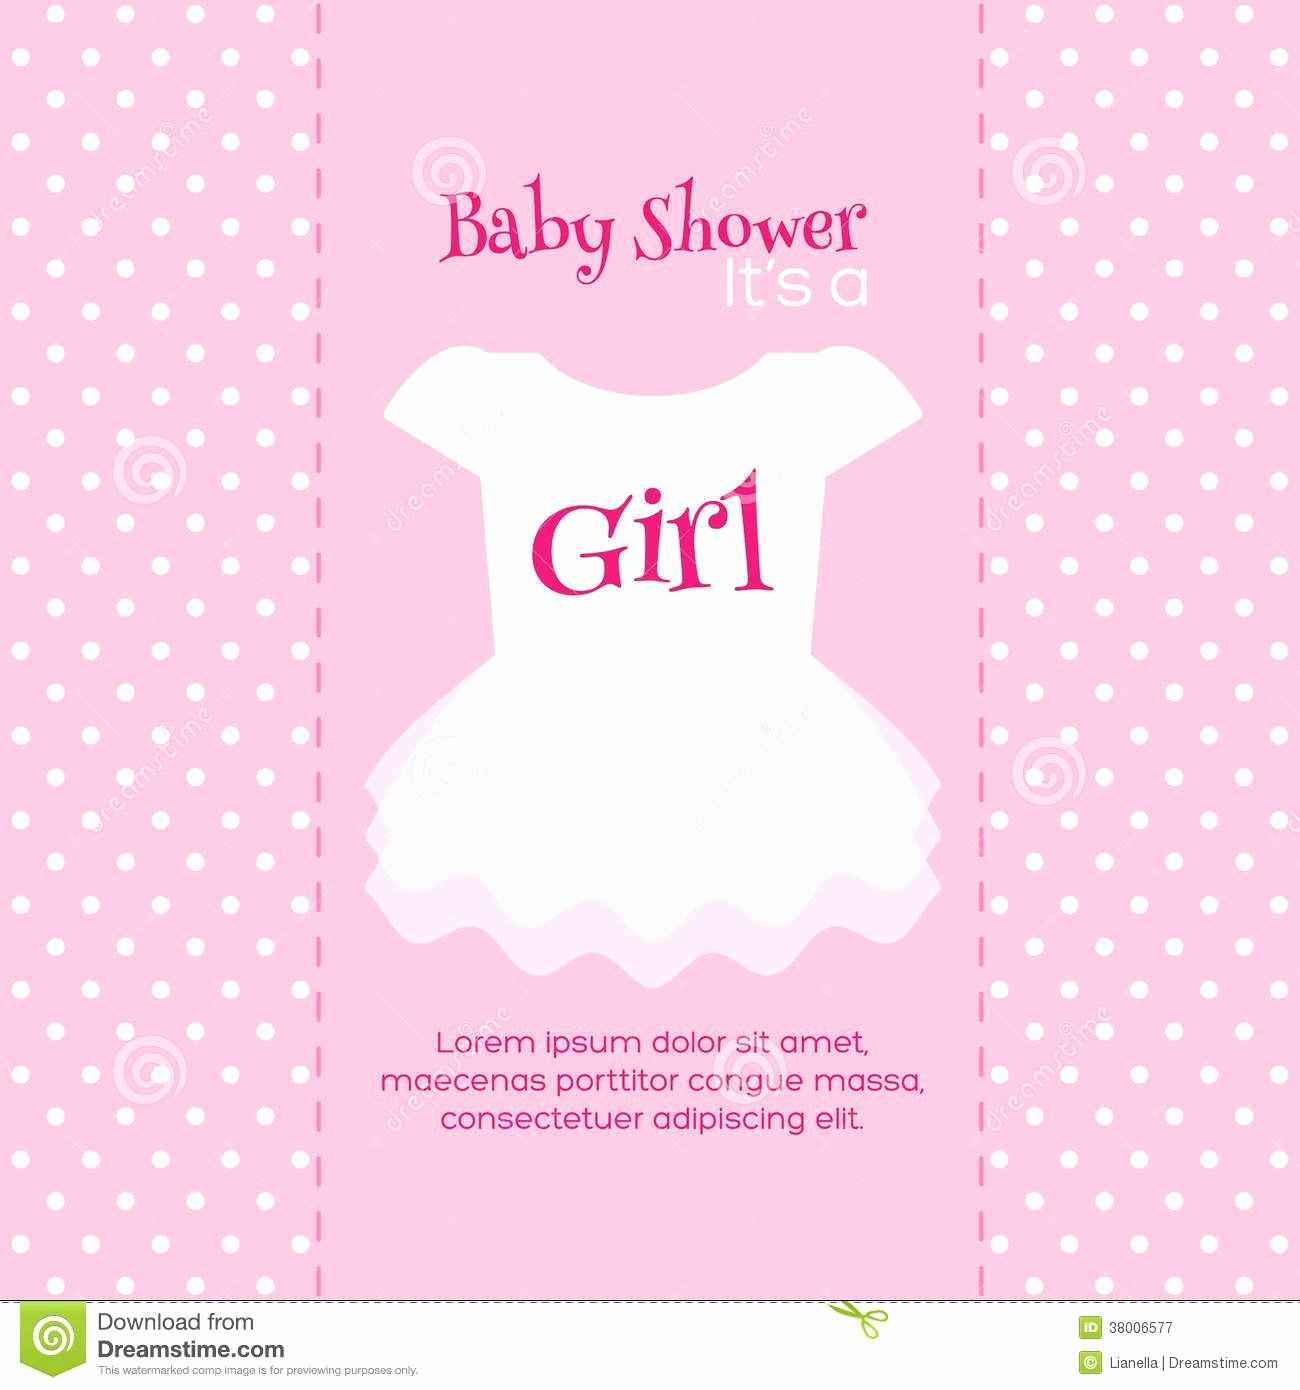 Baby Shower Card Printable Beautiful Design Free Printable Baby Shower Invitations for Girls